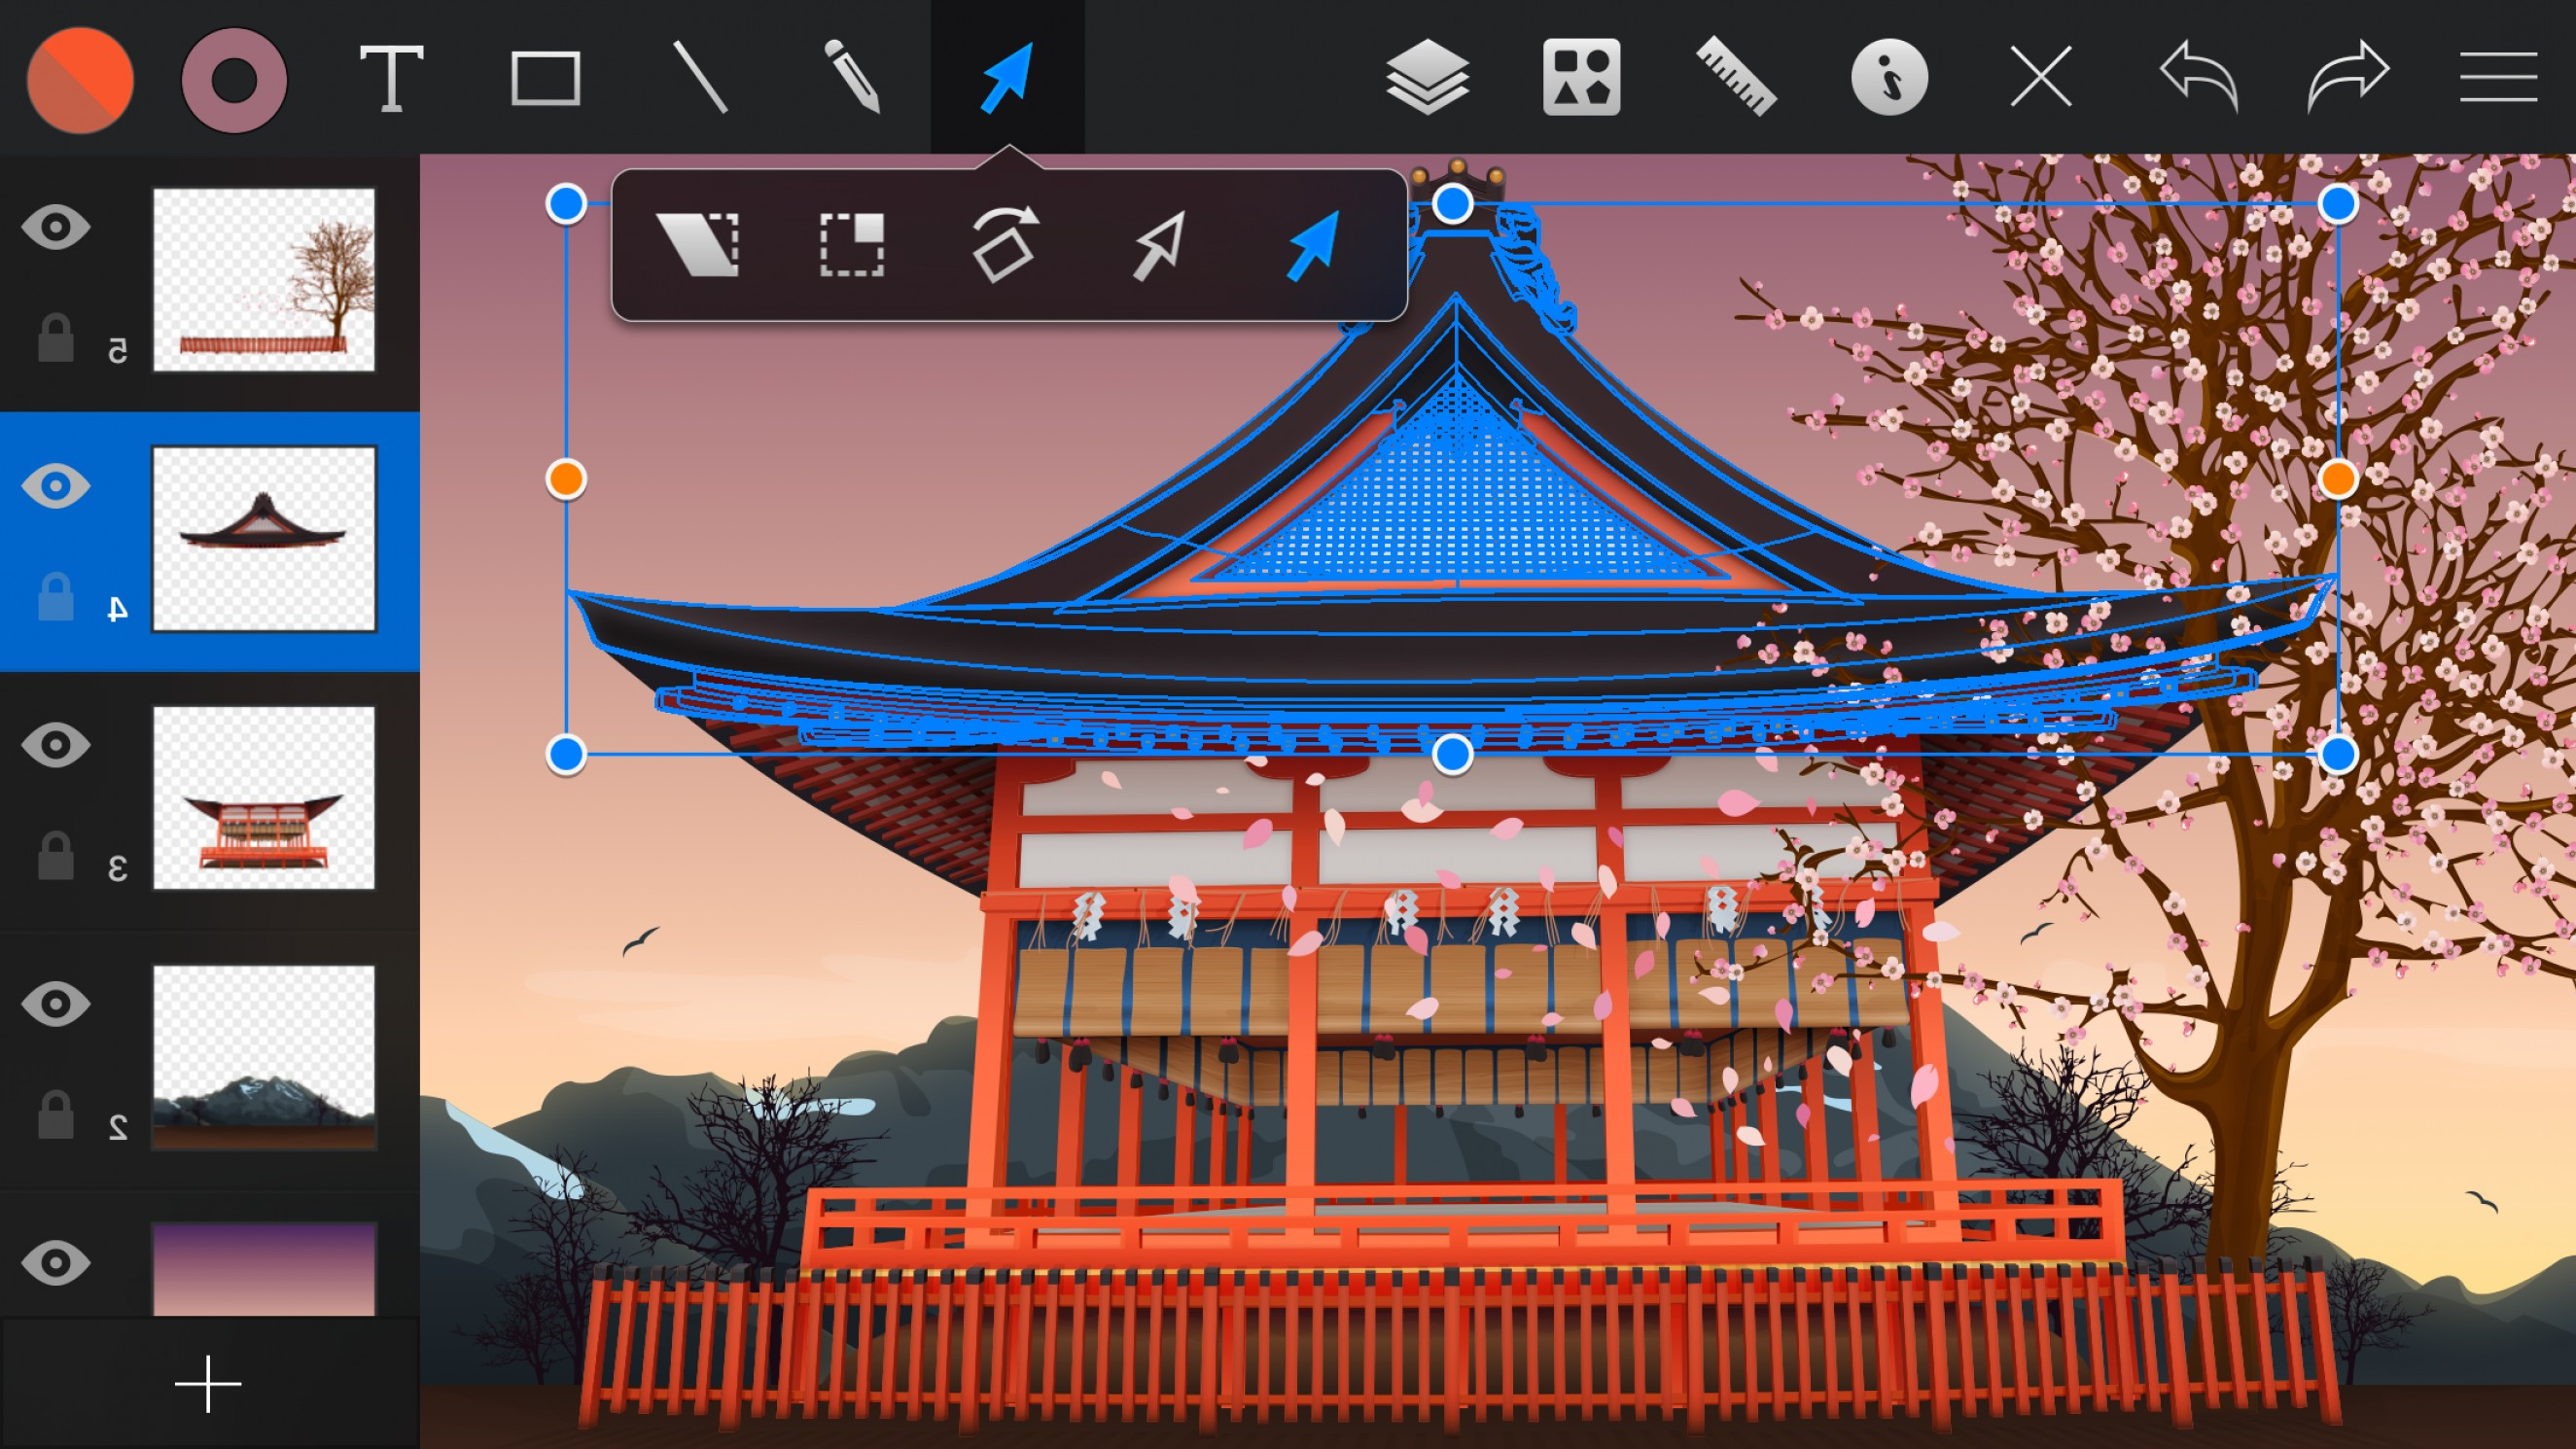 Vector Drawing App Windows 8: Introducing Autodesk Graphic A Full Featured Vector Design And Illustration Application